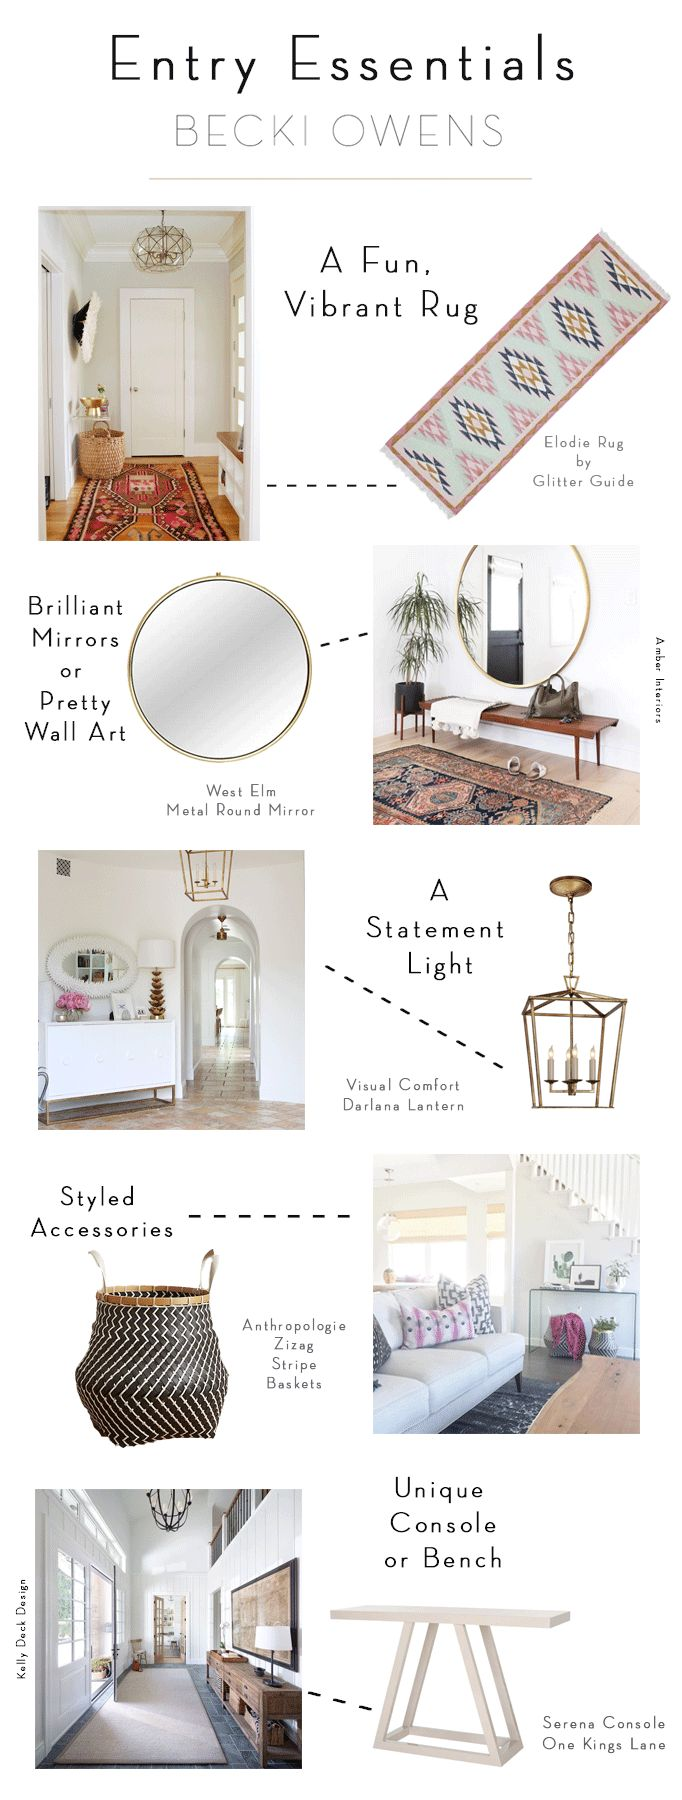 Entries are some of my favorite spaces to design. They are the first impression of the home and sometimes the only space your visitor will see. To make it easy, I've narrowed these elements down to 5 key entry essentials: Rugs, Lighting, Wall Decor, Styling Accessories and a furniture piece.